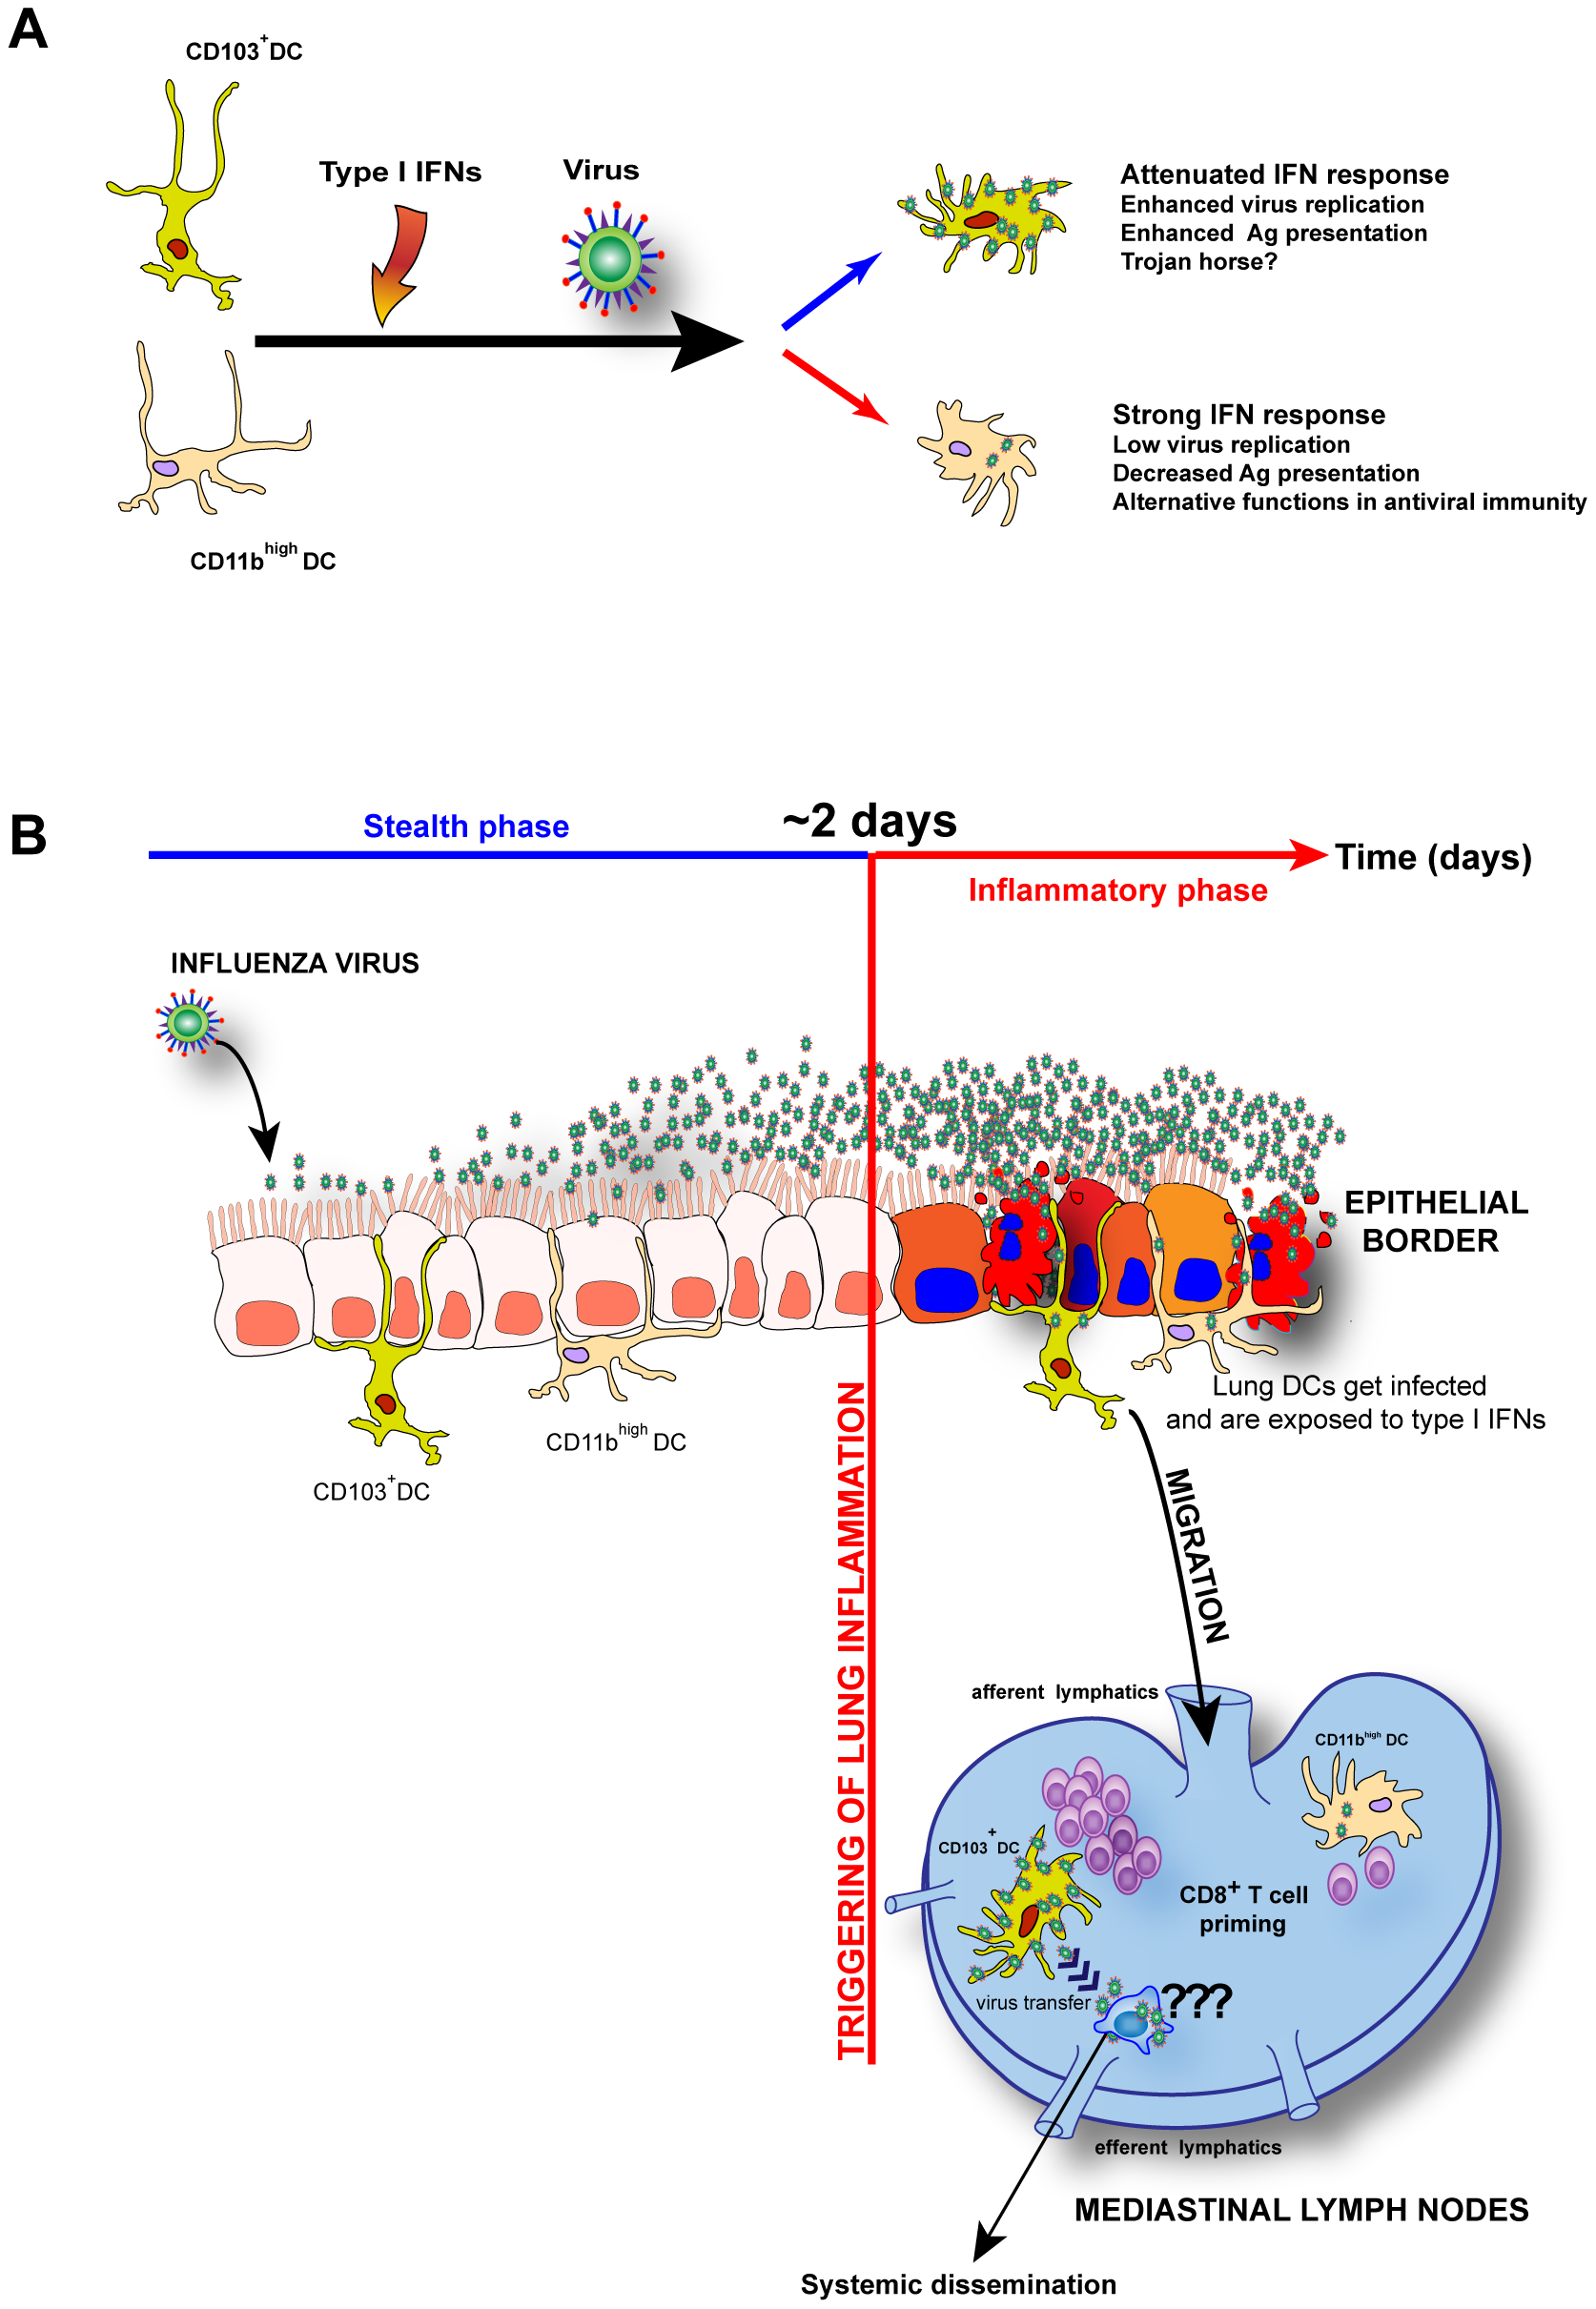 Model: Unique I-IFNs responses determine the functional fate of migratory lung DCs during respiratory virus infection.